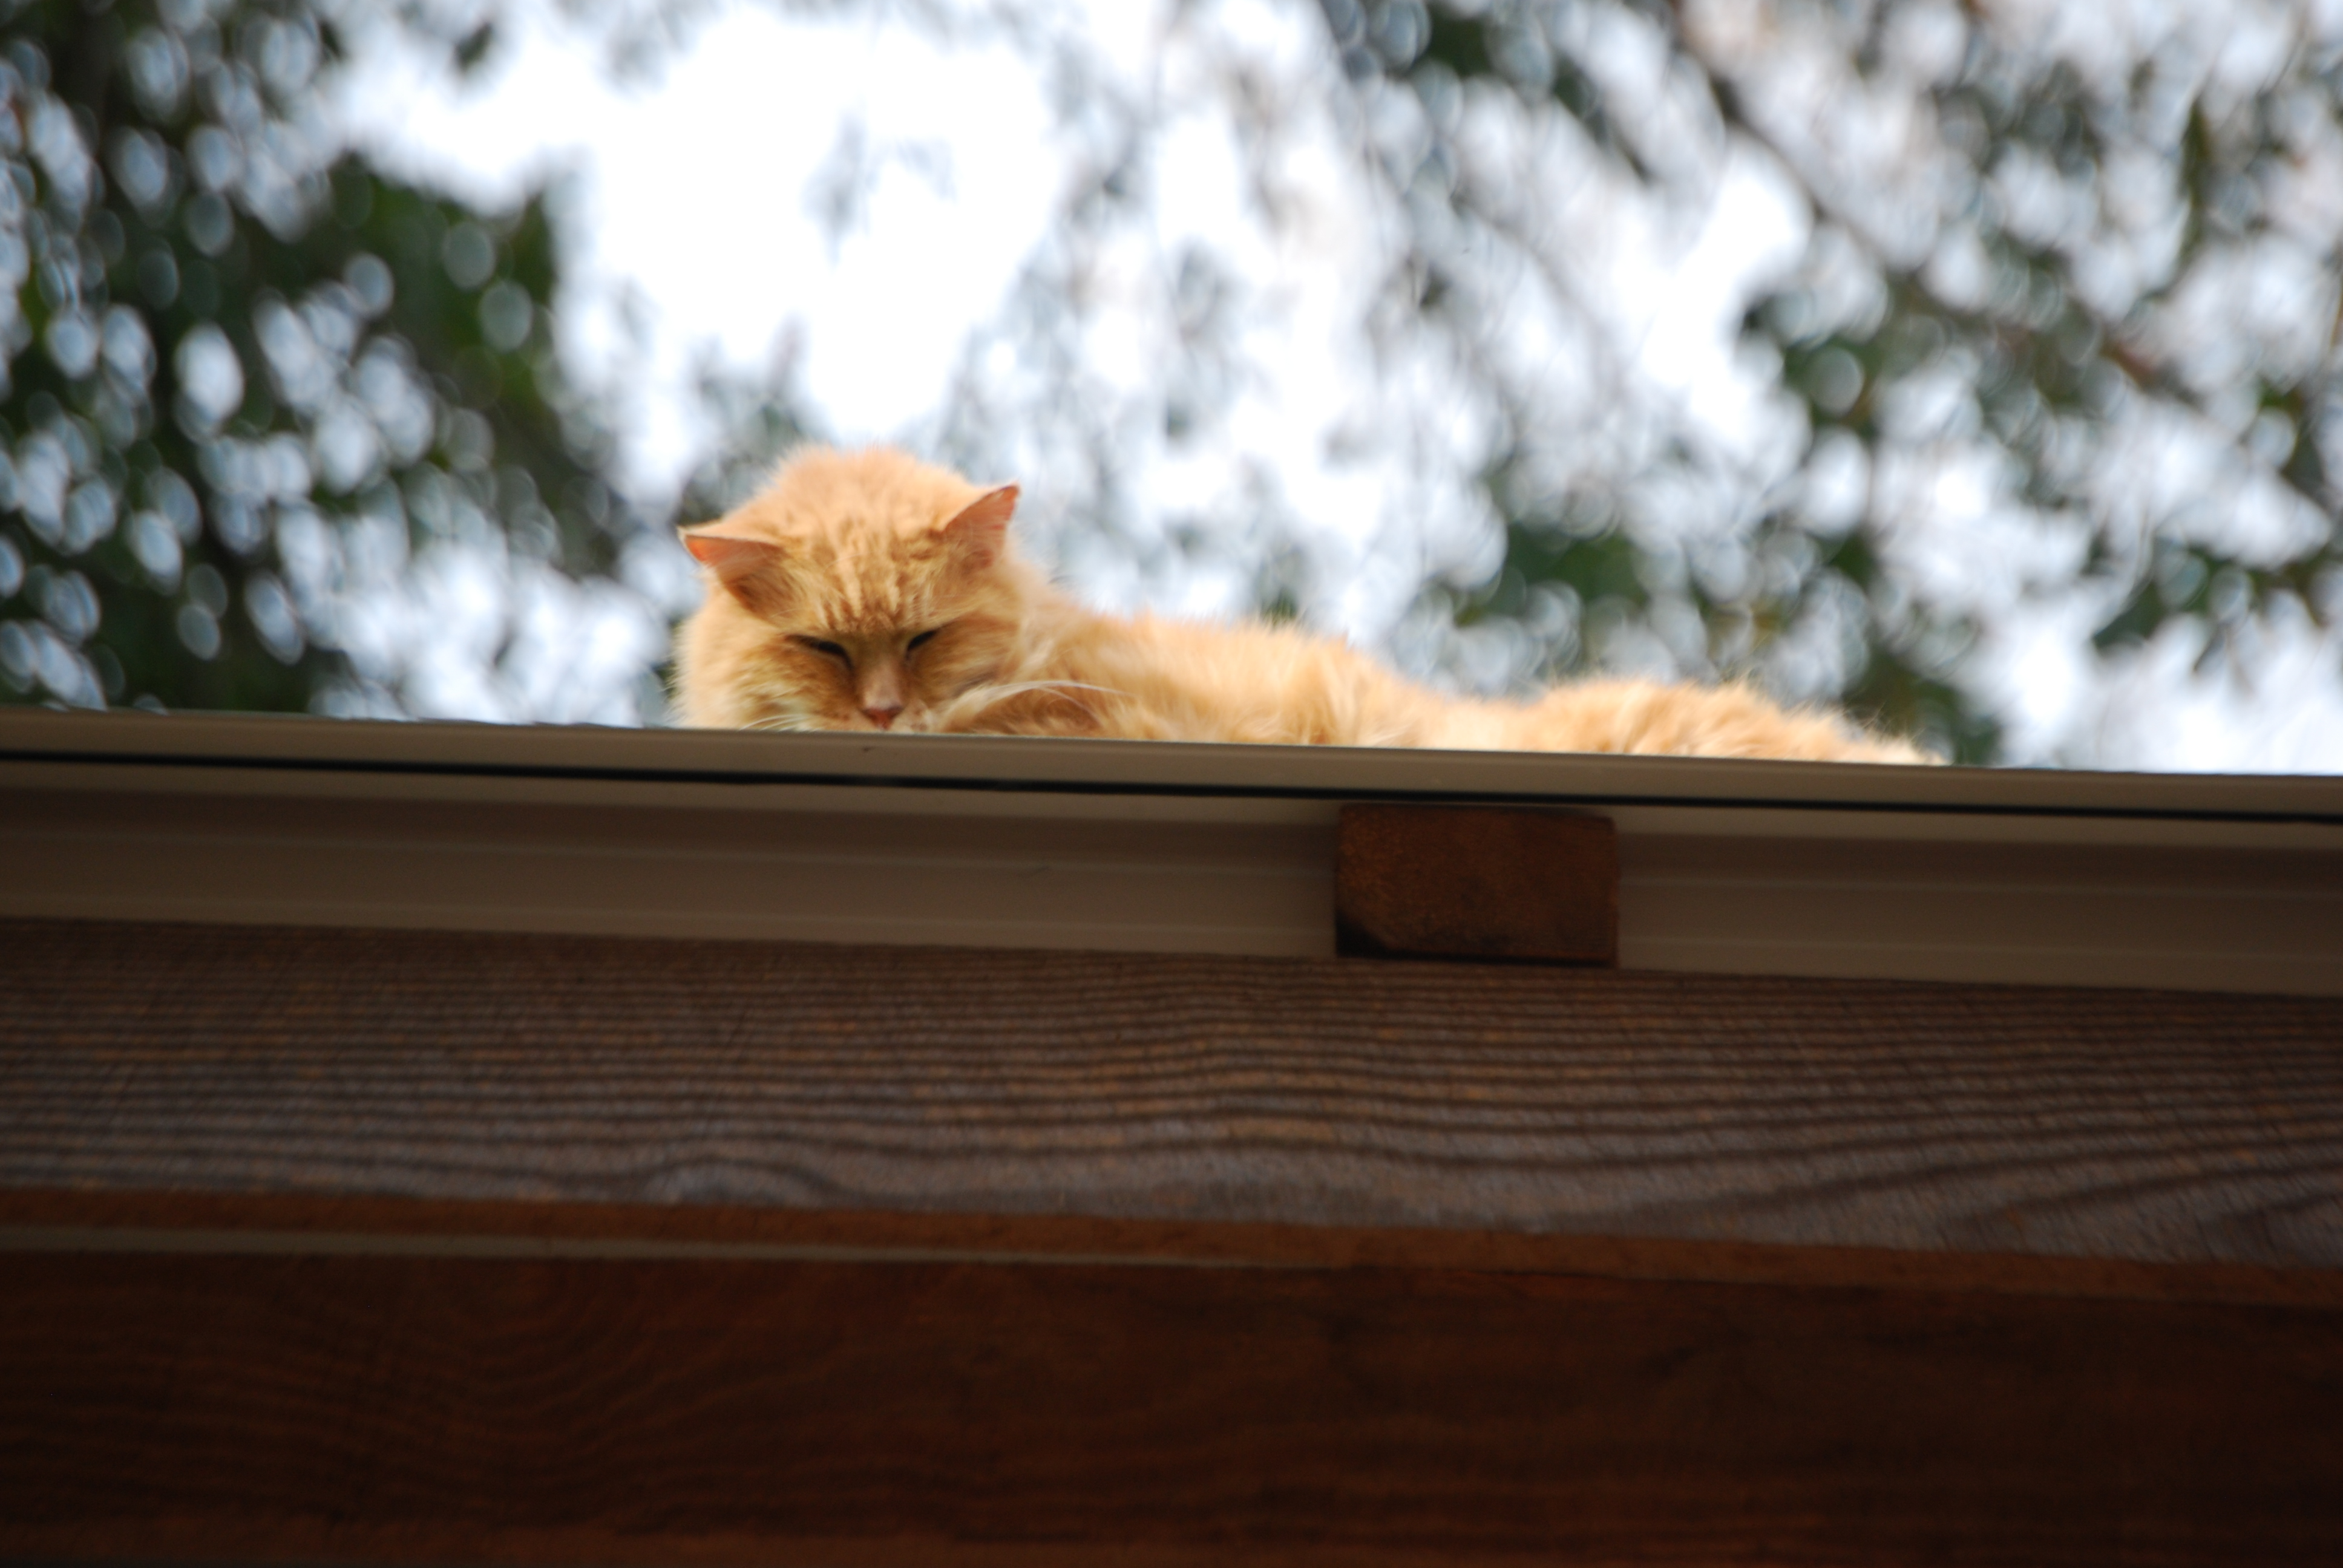 Cats, cat on a roof